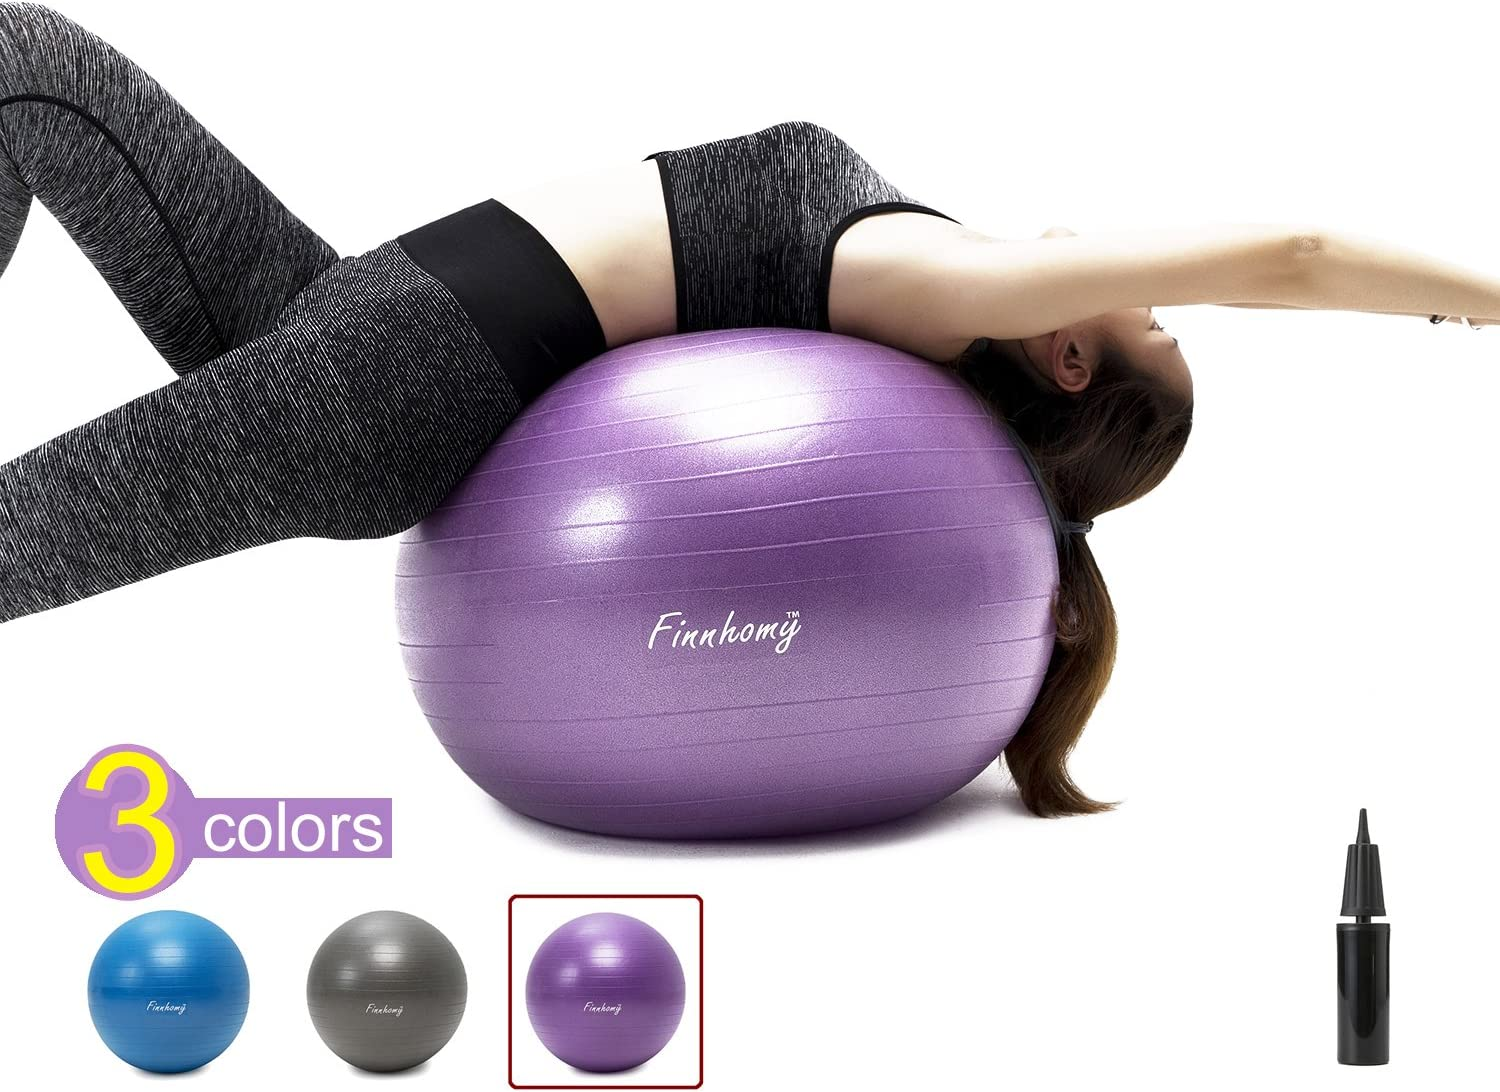 Finnhomy Exercise Ball Multiple Colors for Fitness, Stability, Gym, Balance Yoga, Yoga Ball Chair, Balance Ball, Birthing Ball Swiss Ball Workout with Pump Physical, Office, Home